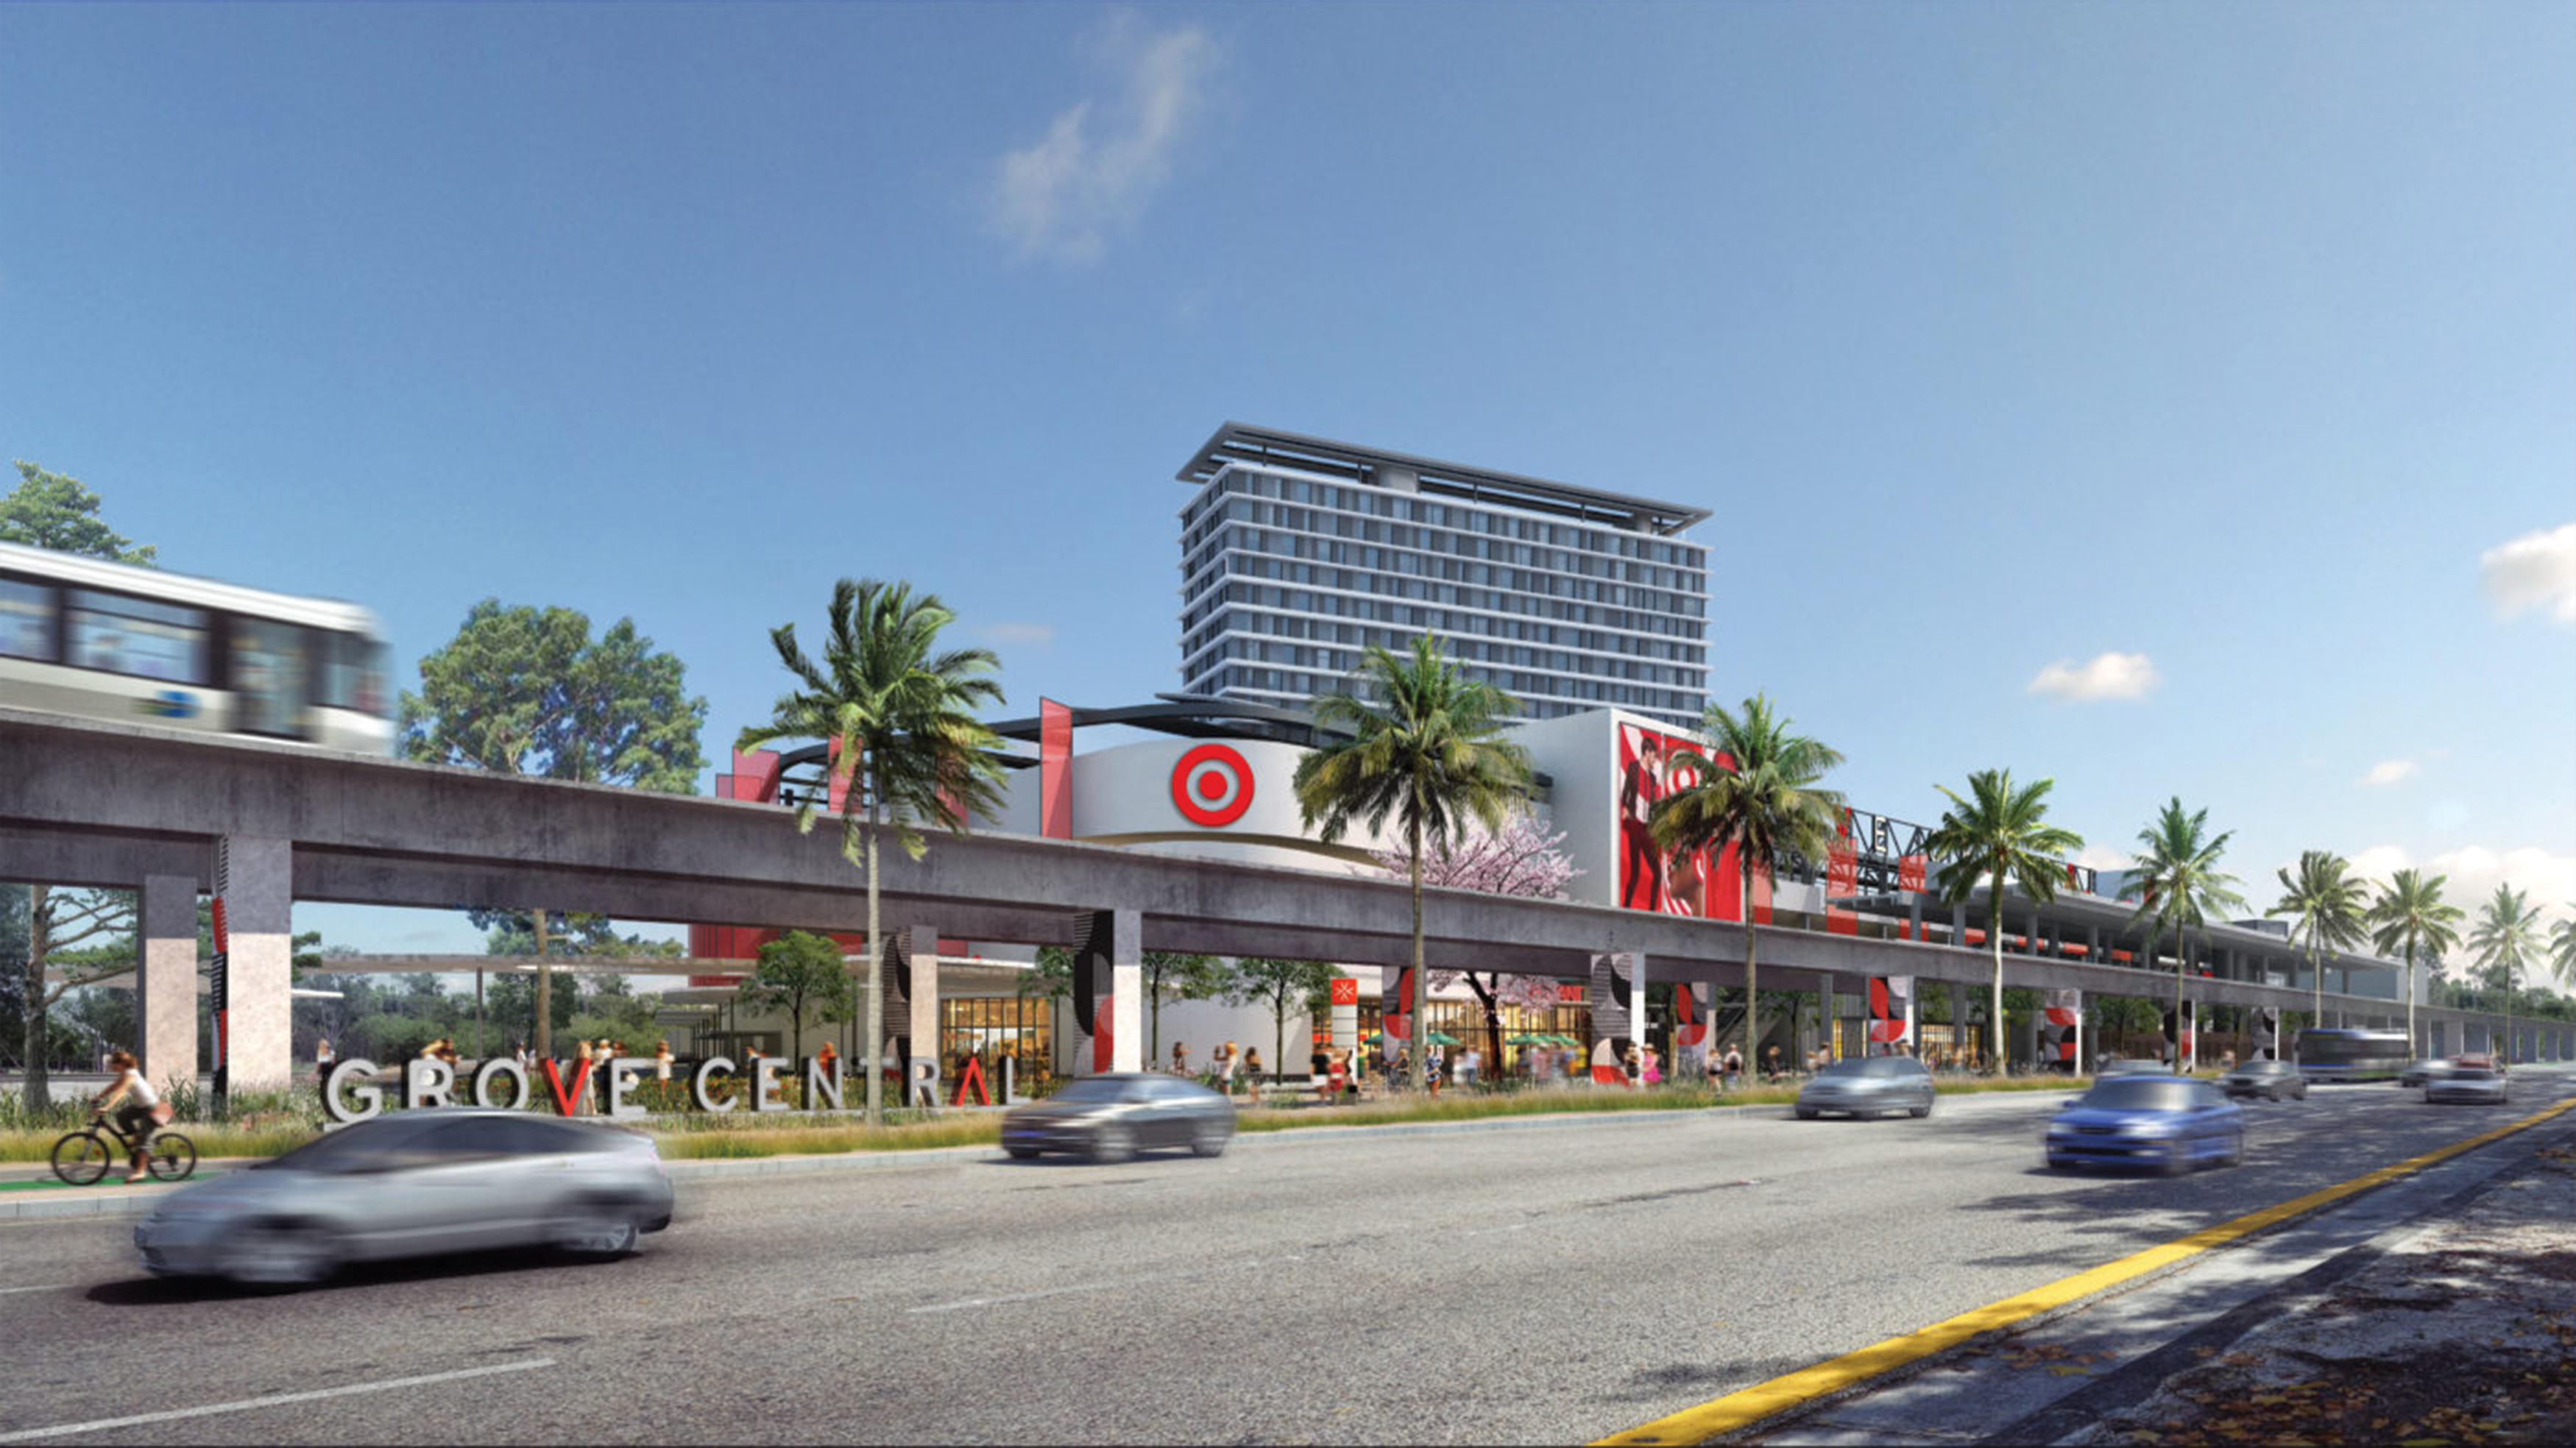 A rendering depicting Grove Central, a mixed-use project located along Miami's new Underline linear park.